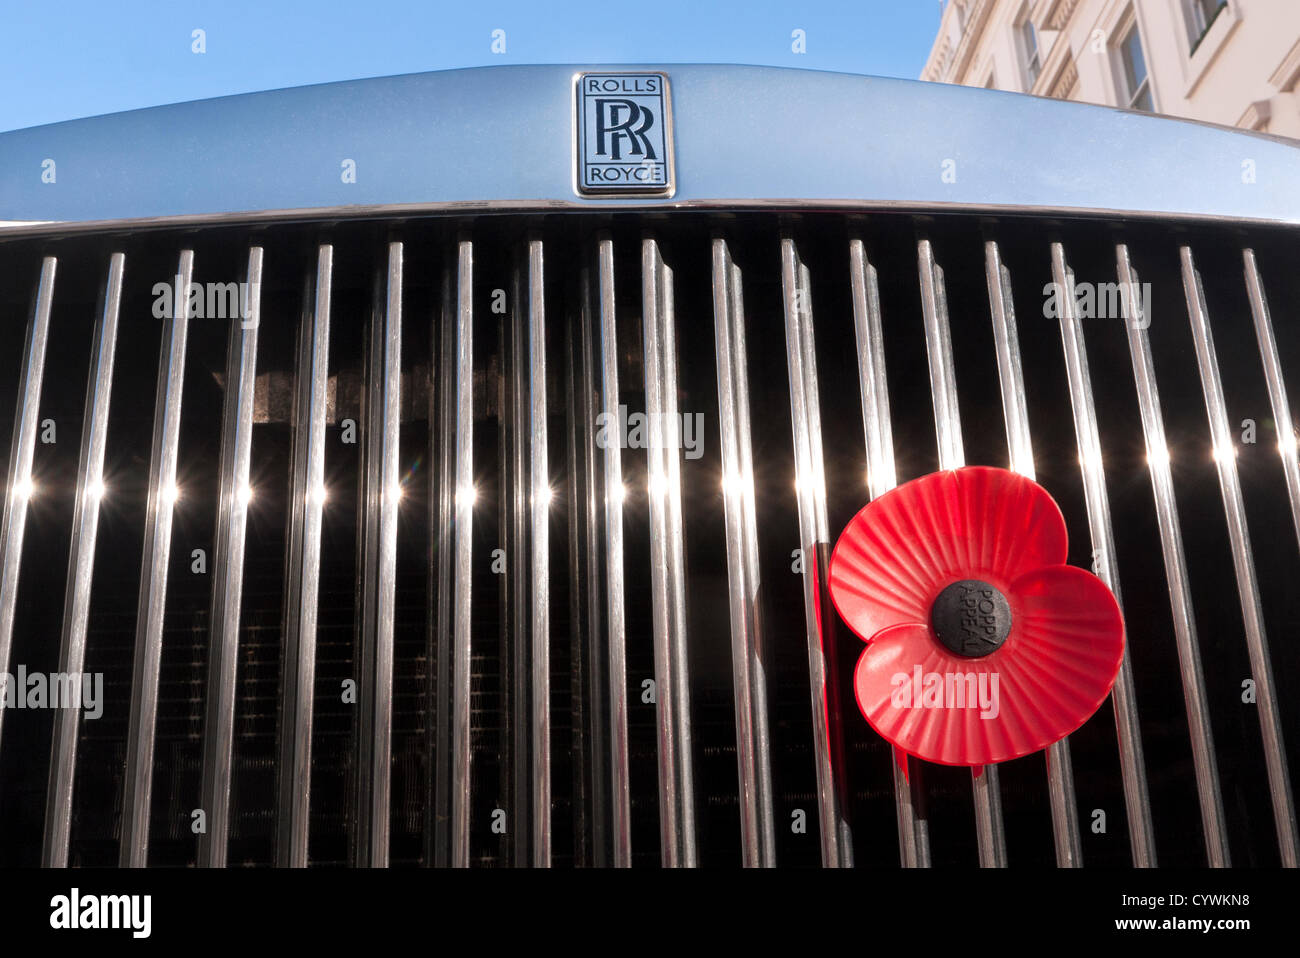 Design of a car radiator - Automobile Poppy Fixed Of A Rolls Royce Car Radiator Grill In London Uk Remembrance Day